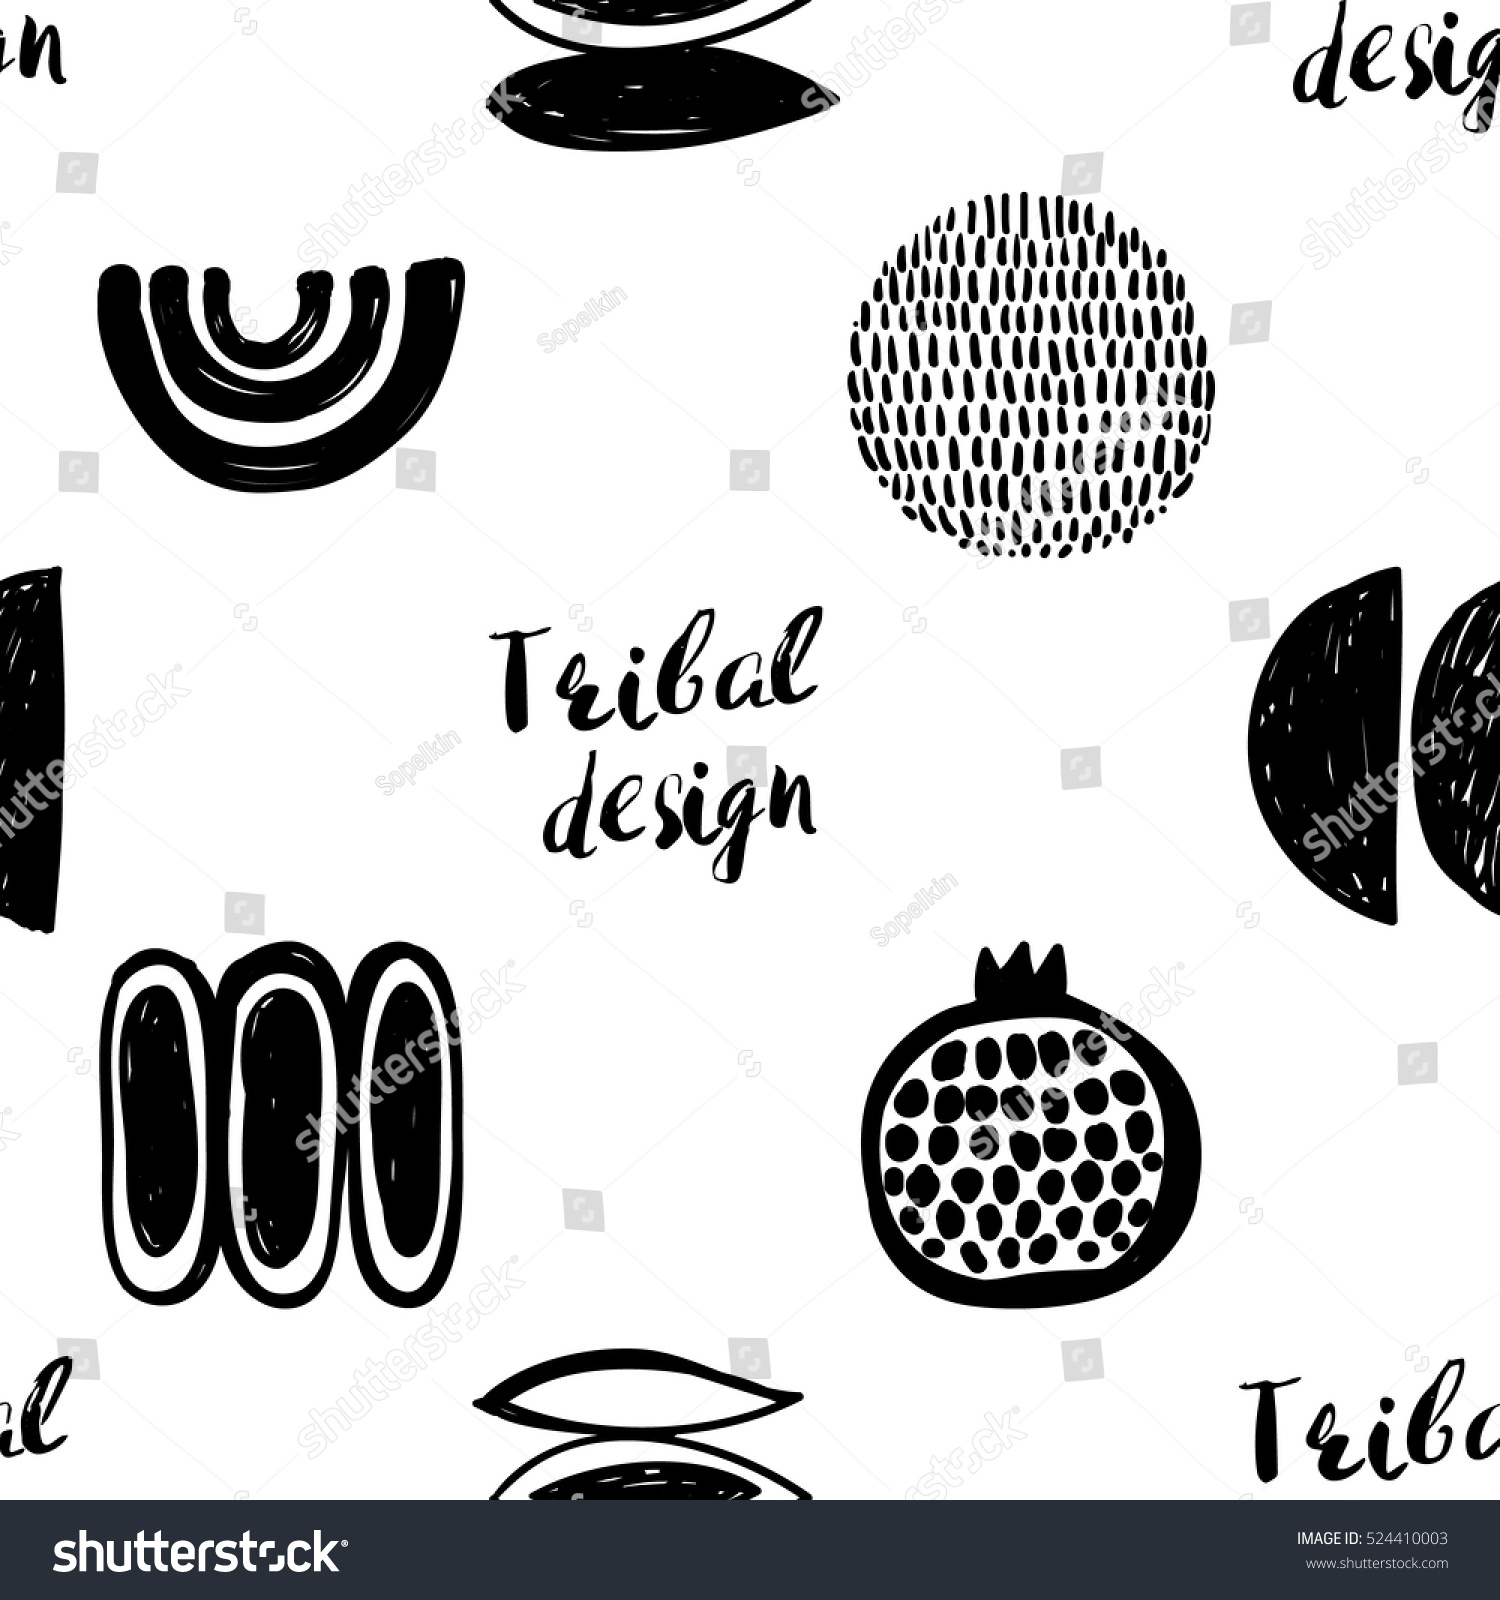 monochrome tribal seamless pattern with pomegranate crescent seed maize corn curves